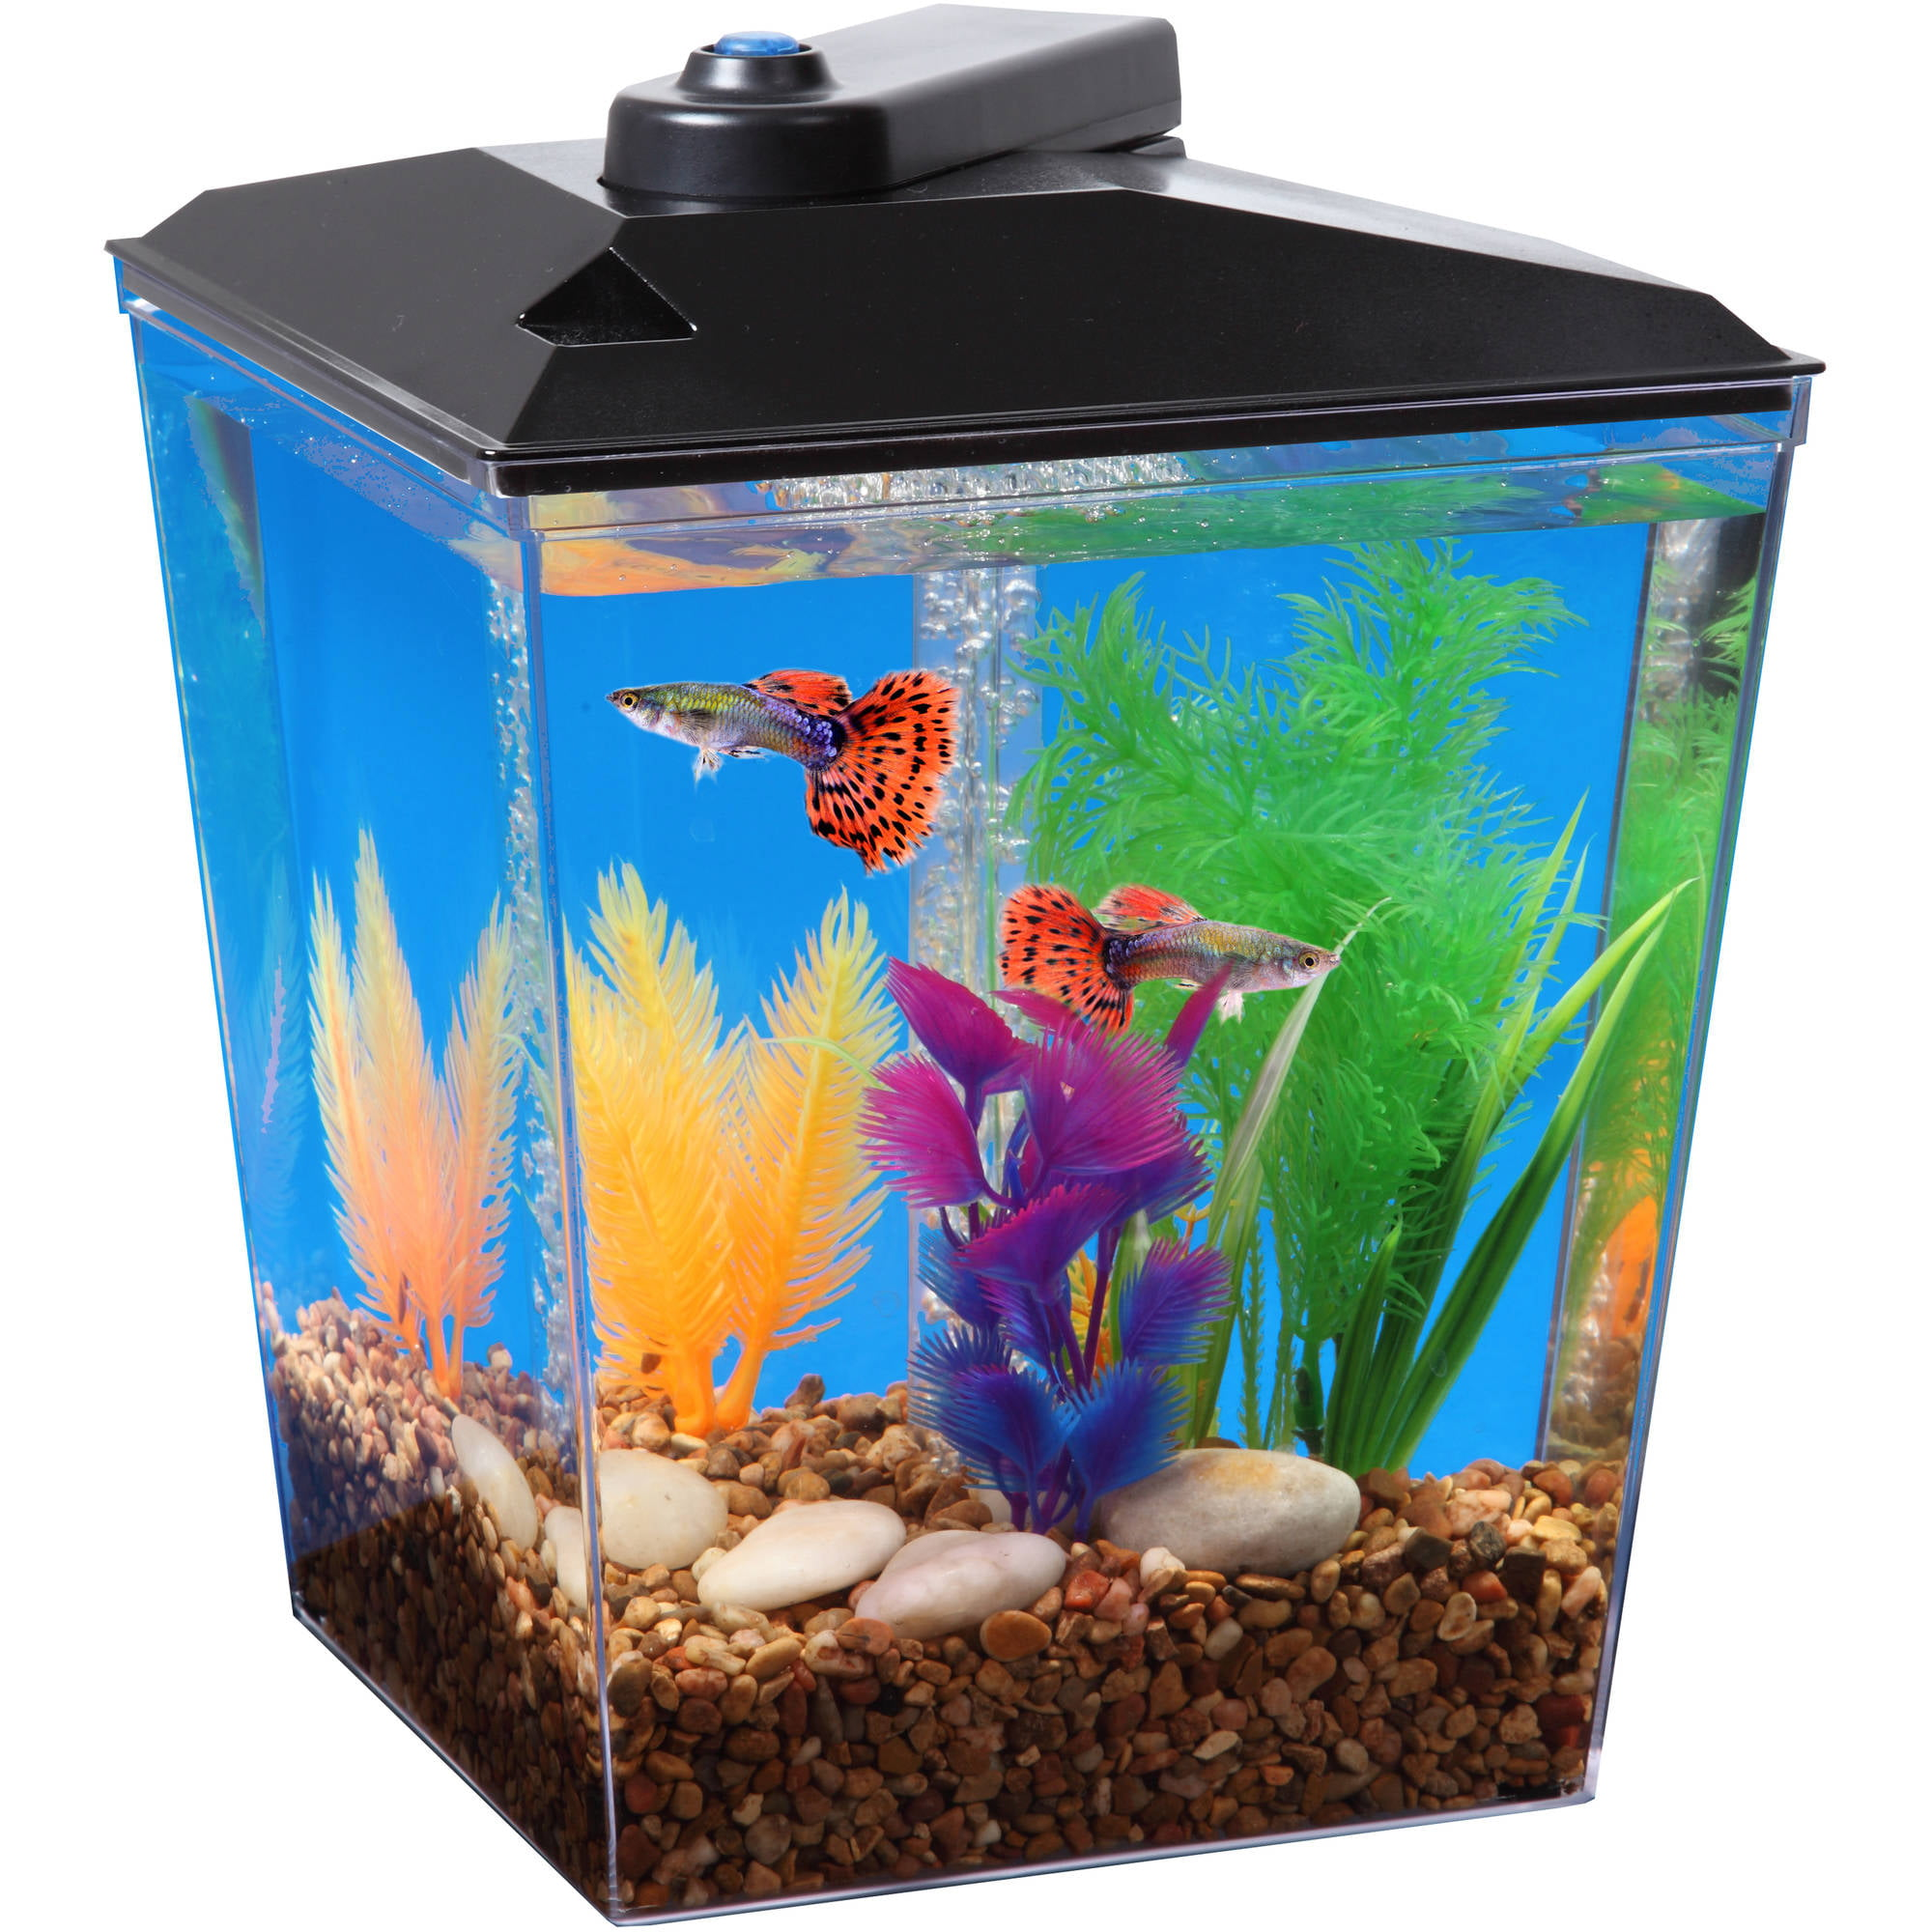 medication feeder coral seachem seacherm medicine myaquariumshop fish paraguard ml auto freshwater marine shop